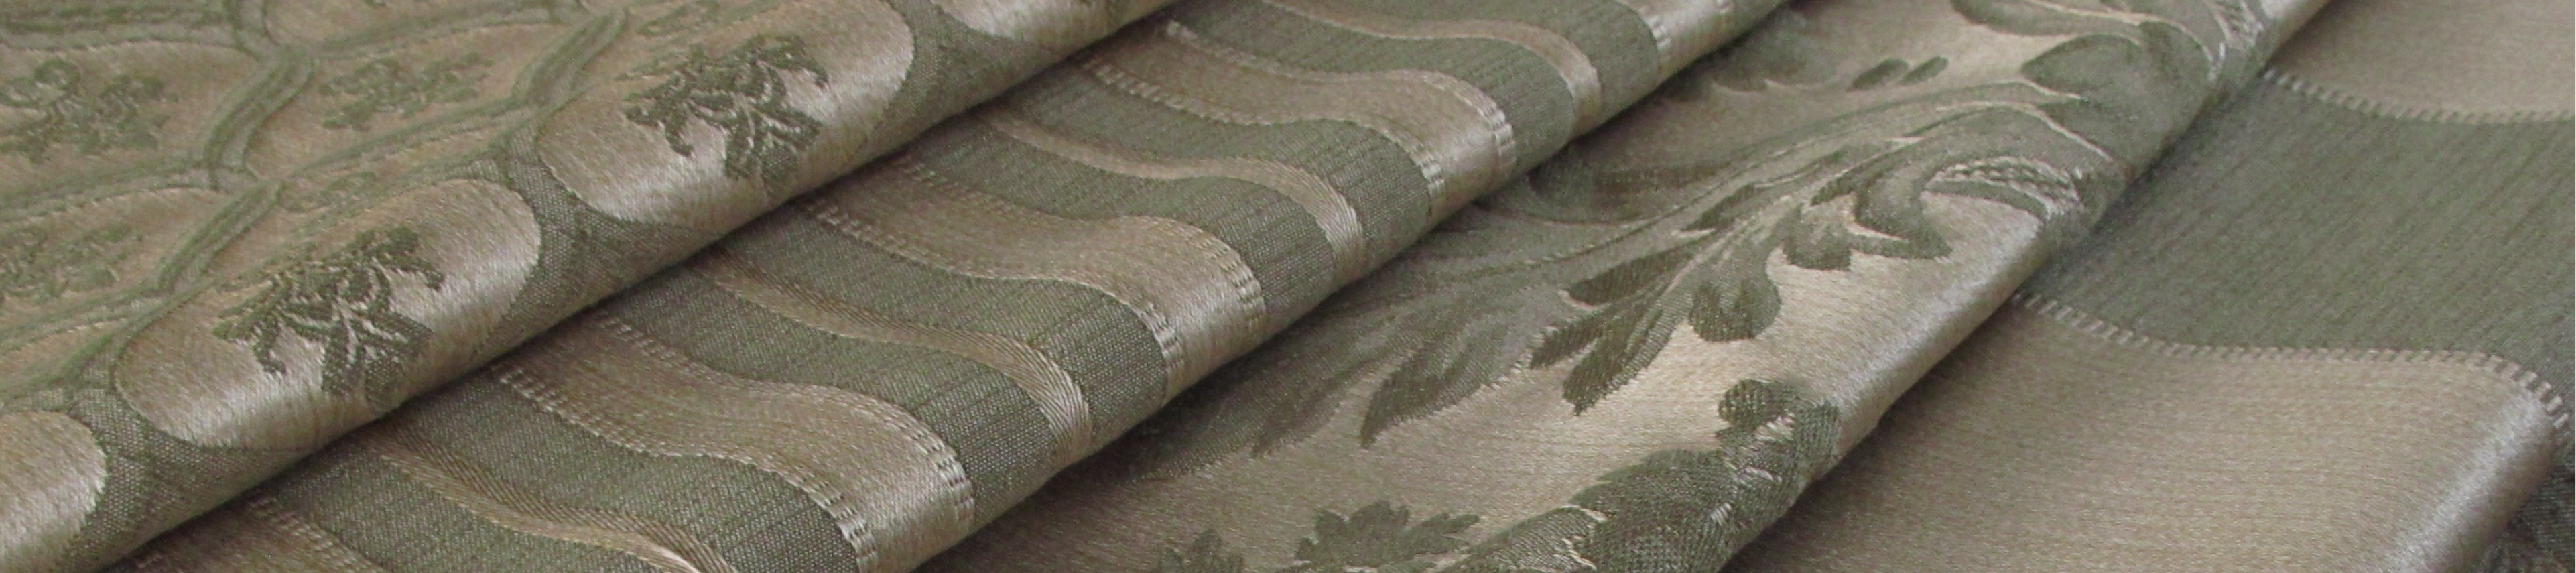 curtain fabric channel islands, upholstery fabric channel islands